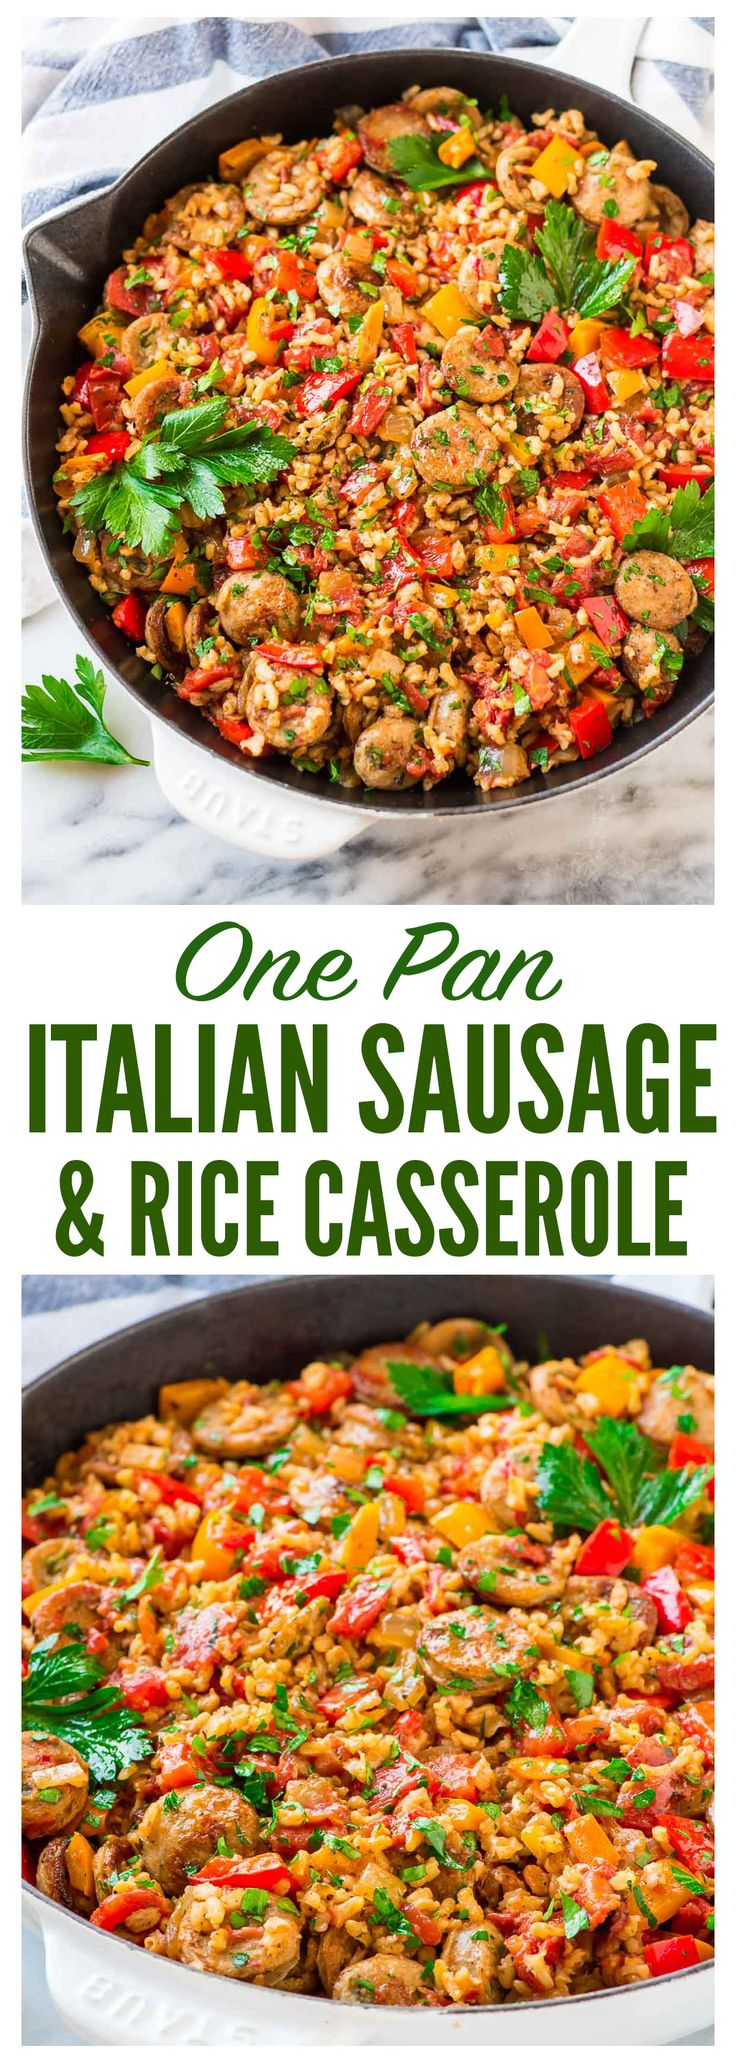 Quick and easy Italian Sausage and Rice Casserole. Cooks in ONE PAN! Smoky chicken sausage, juicy bell peppers, and brown rice in a tomato sauce. One of our favorite healthy weeknight dinners! Recipe at wellplated.com | @wellplated {gluten free}